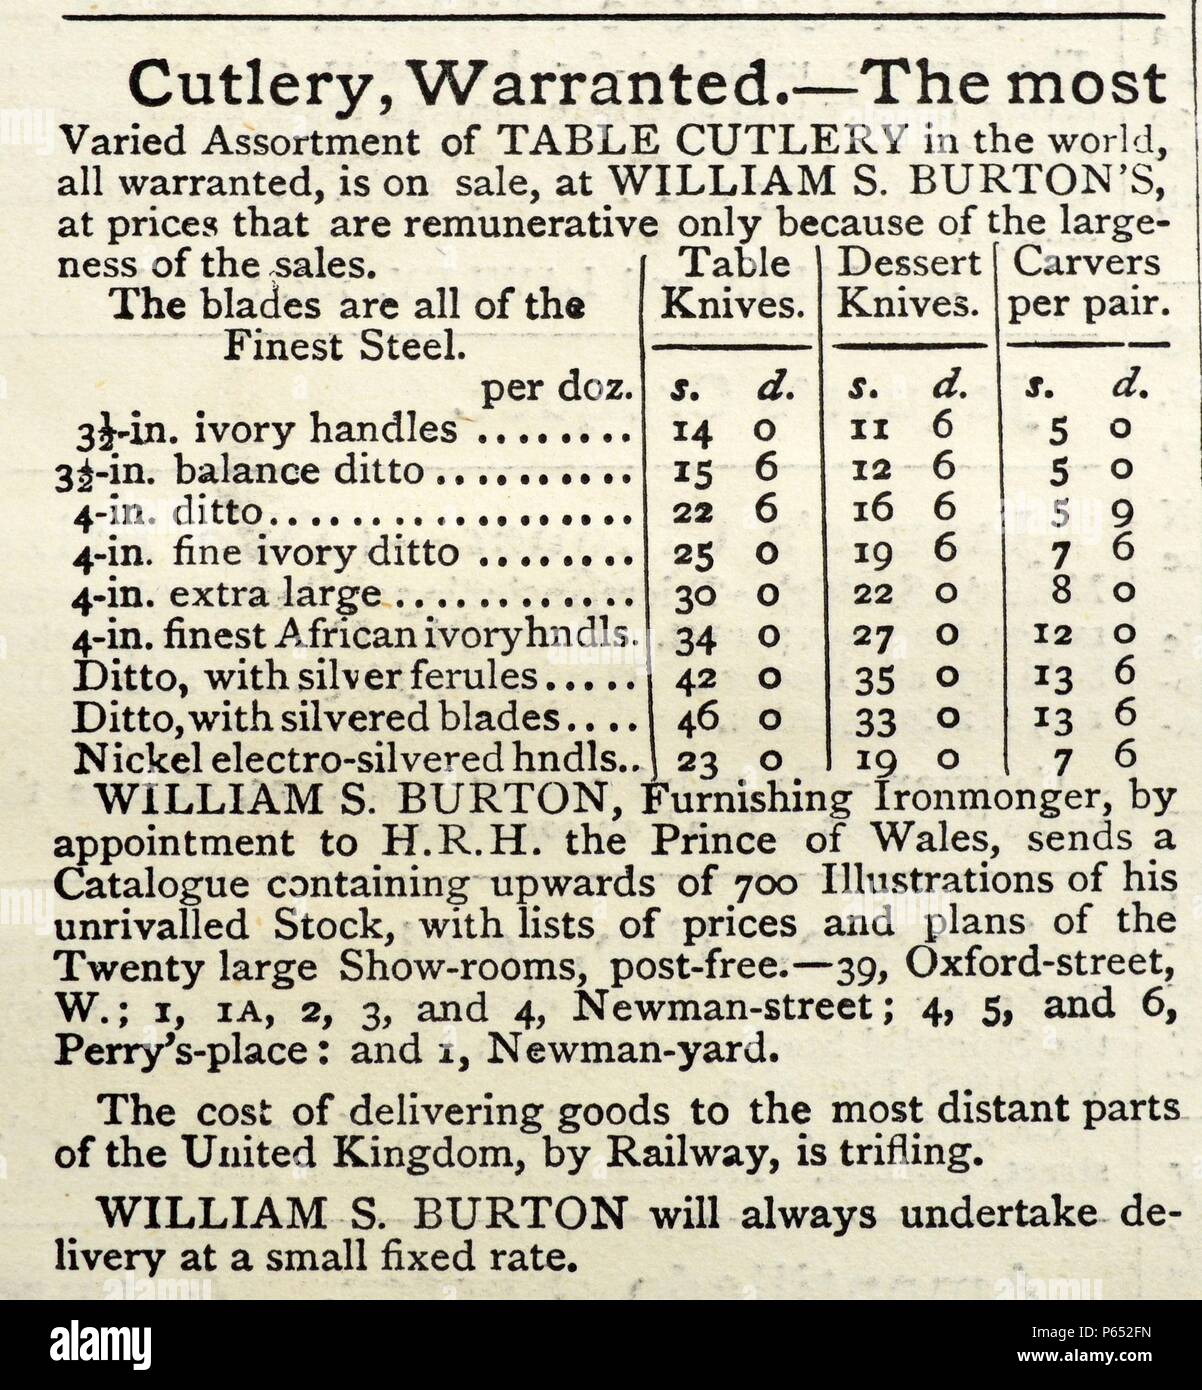 Advert in an English newspaper for stainless steel cutlery. Advert placed by the William Burton company. Adverts shows a price list for items including, ivory handles. 19th Century saw the growth of British steel industry, serving in industrial and domestic markets. Stock Photo